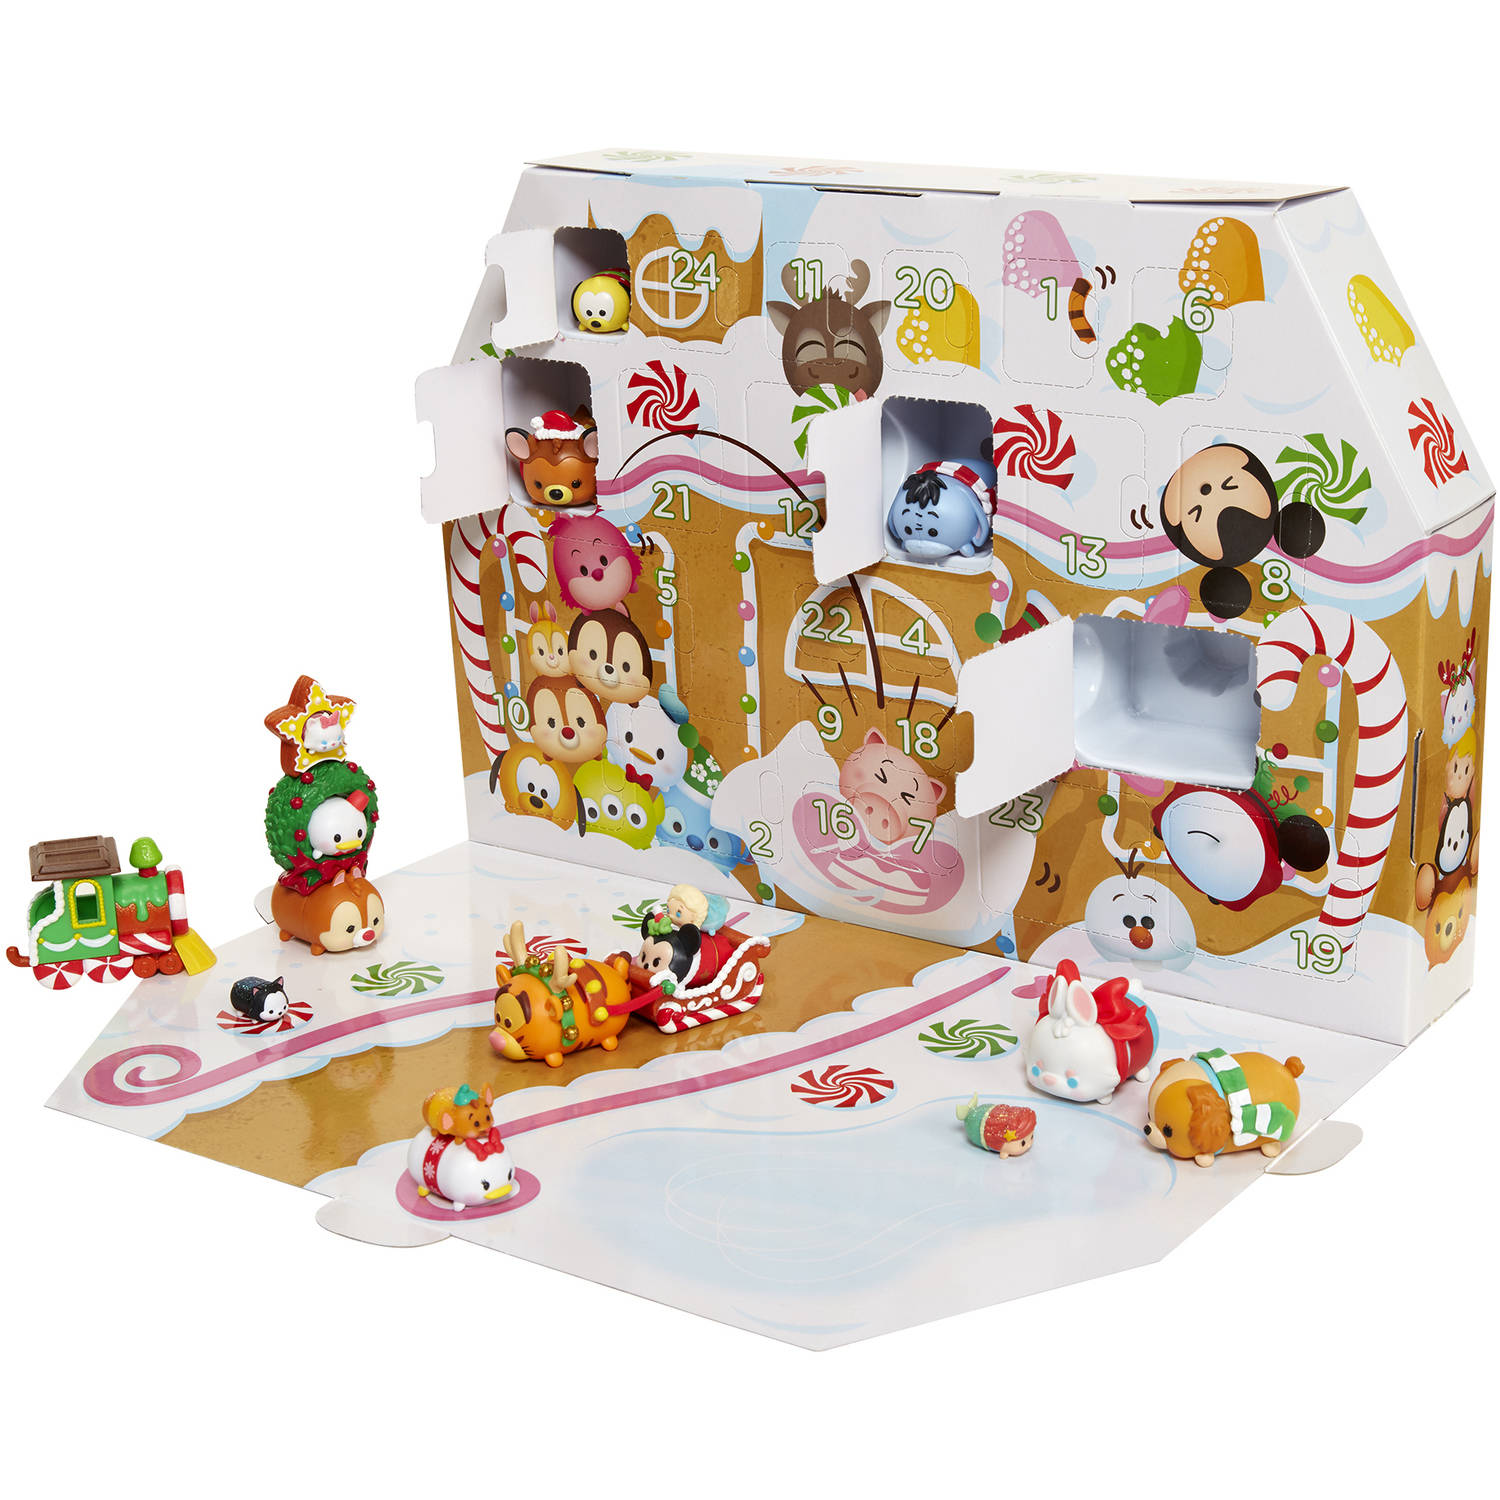 Jakks Pacific Tsum Tsum Advent Calendar